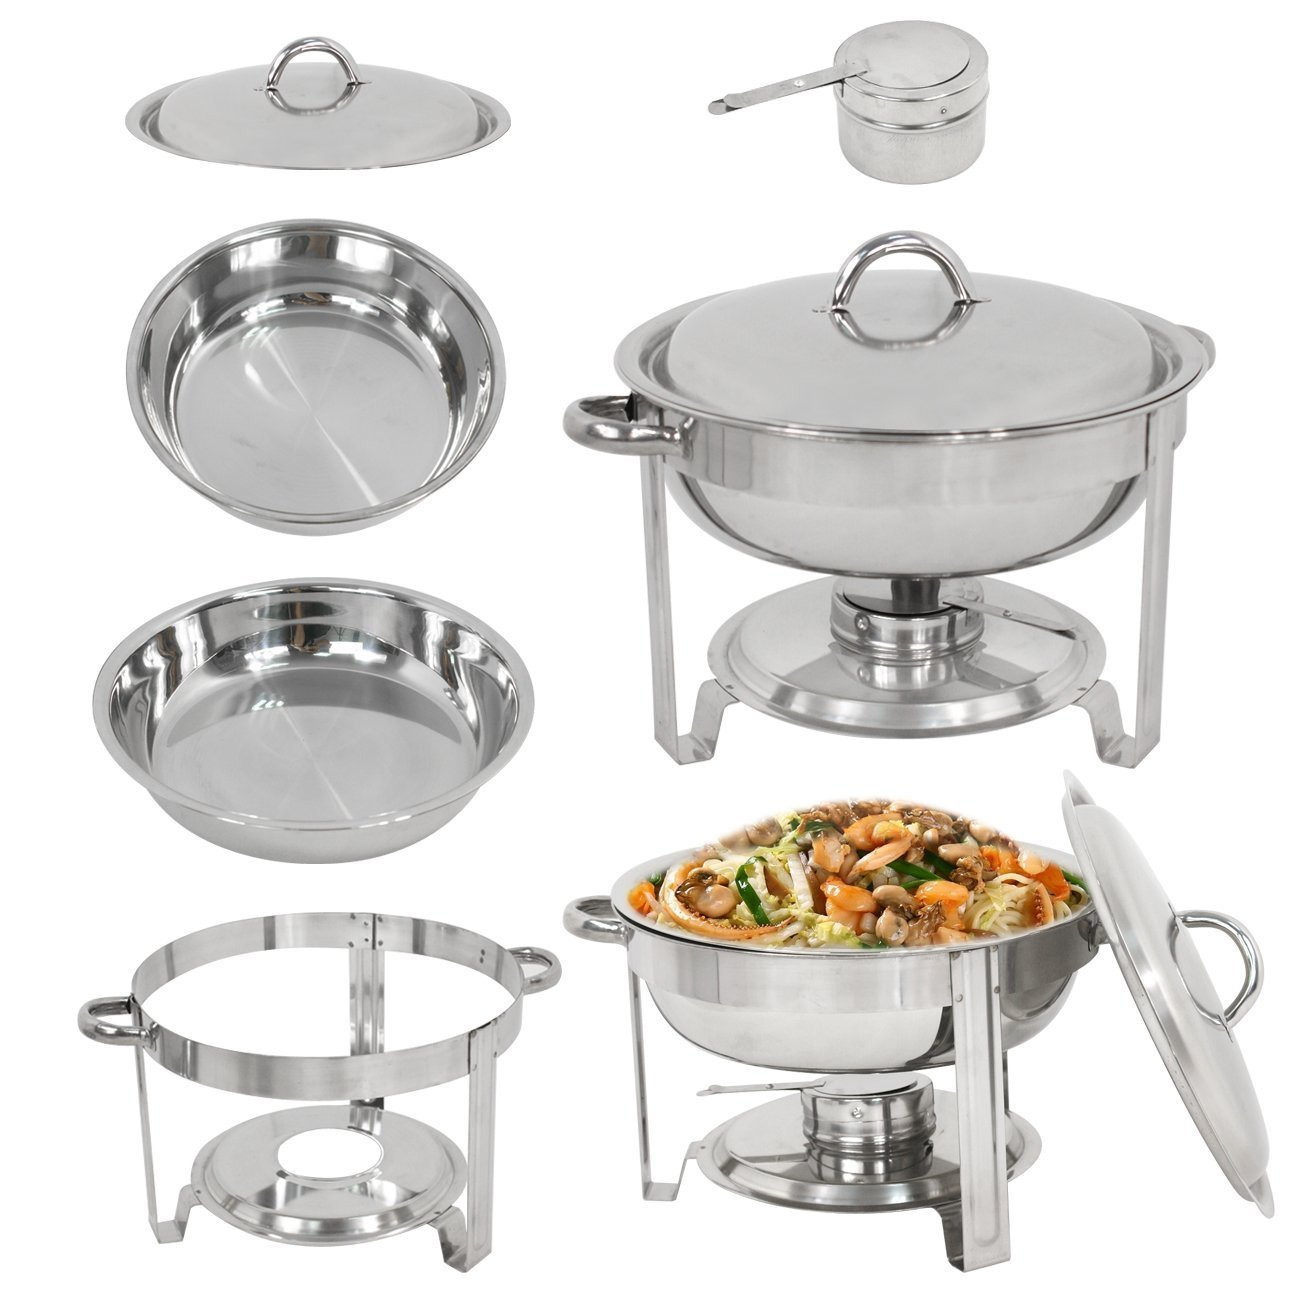 Super Deal Stainless Steel Combo - 2 Round Chafing Dish + 2 Rectangular Chafers by SUPER DEAL (Image #3)